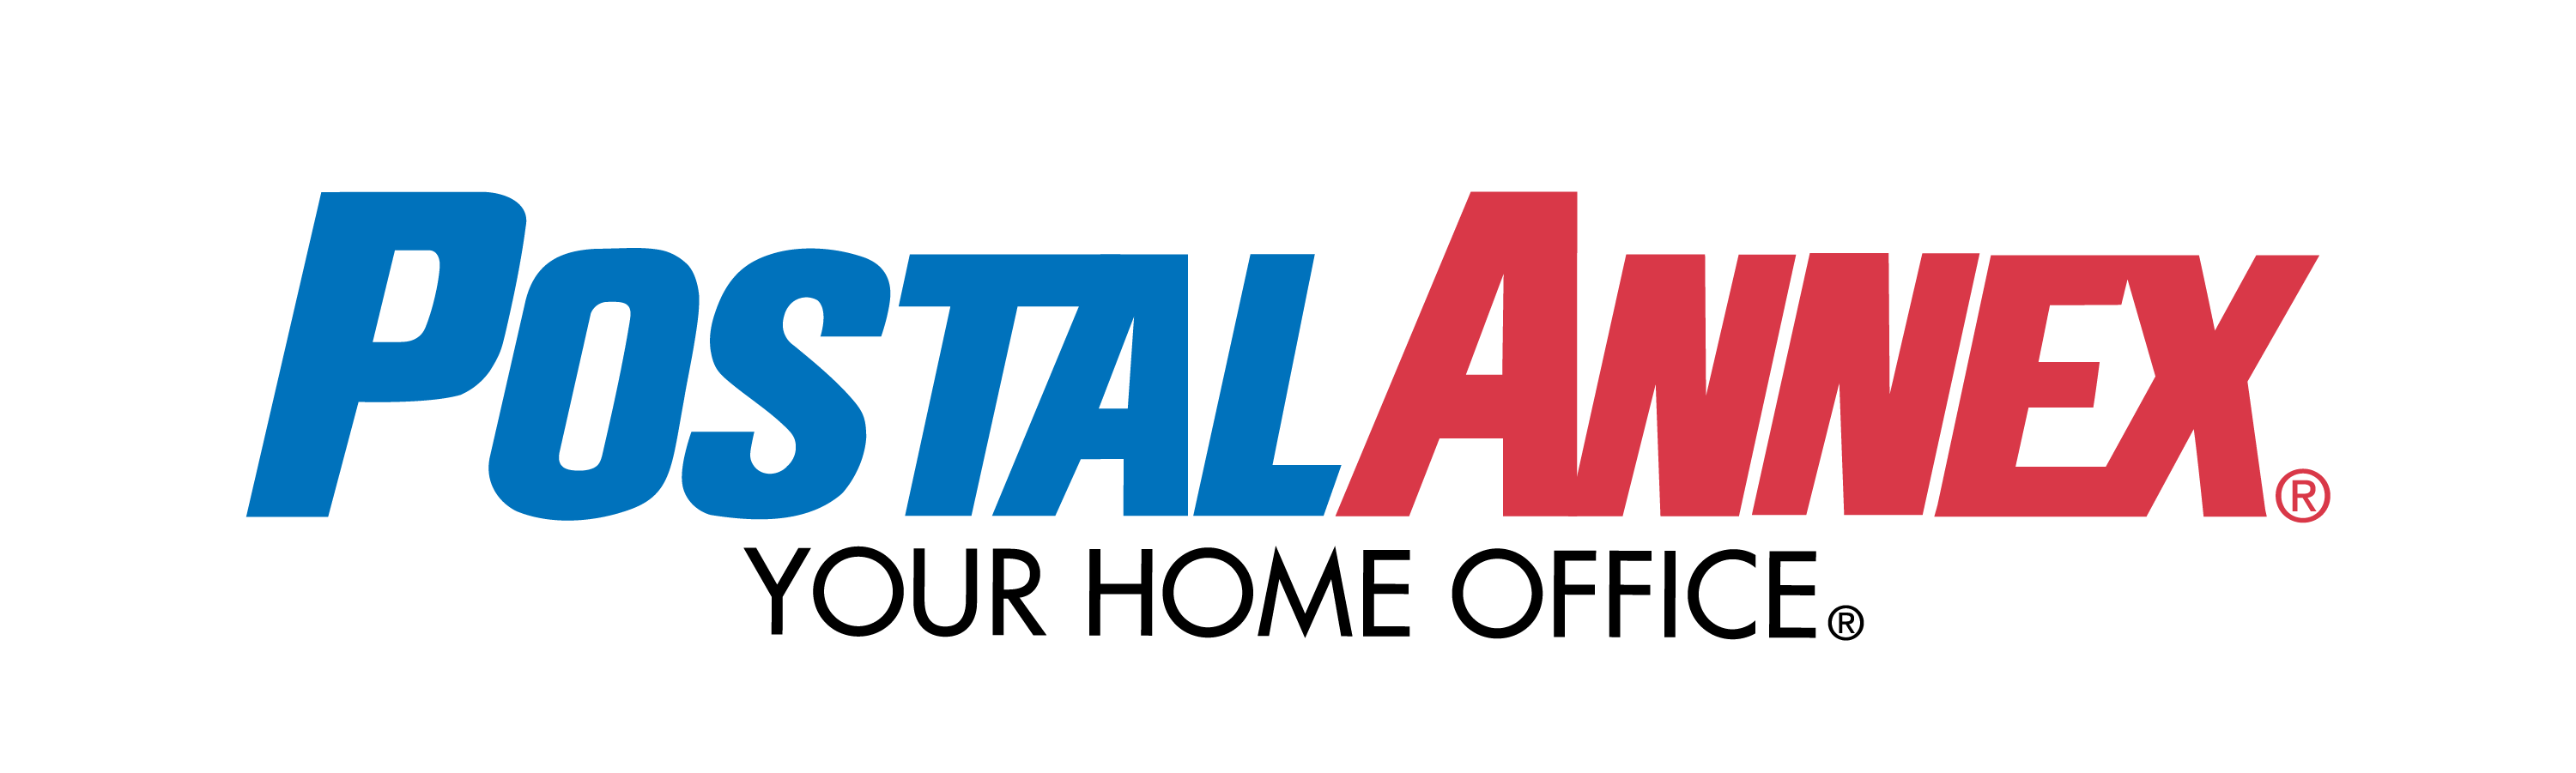 new postalannex logo yourhomeoffice 01